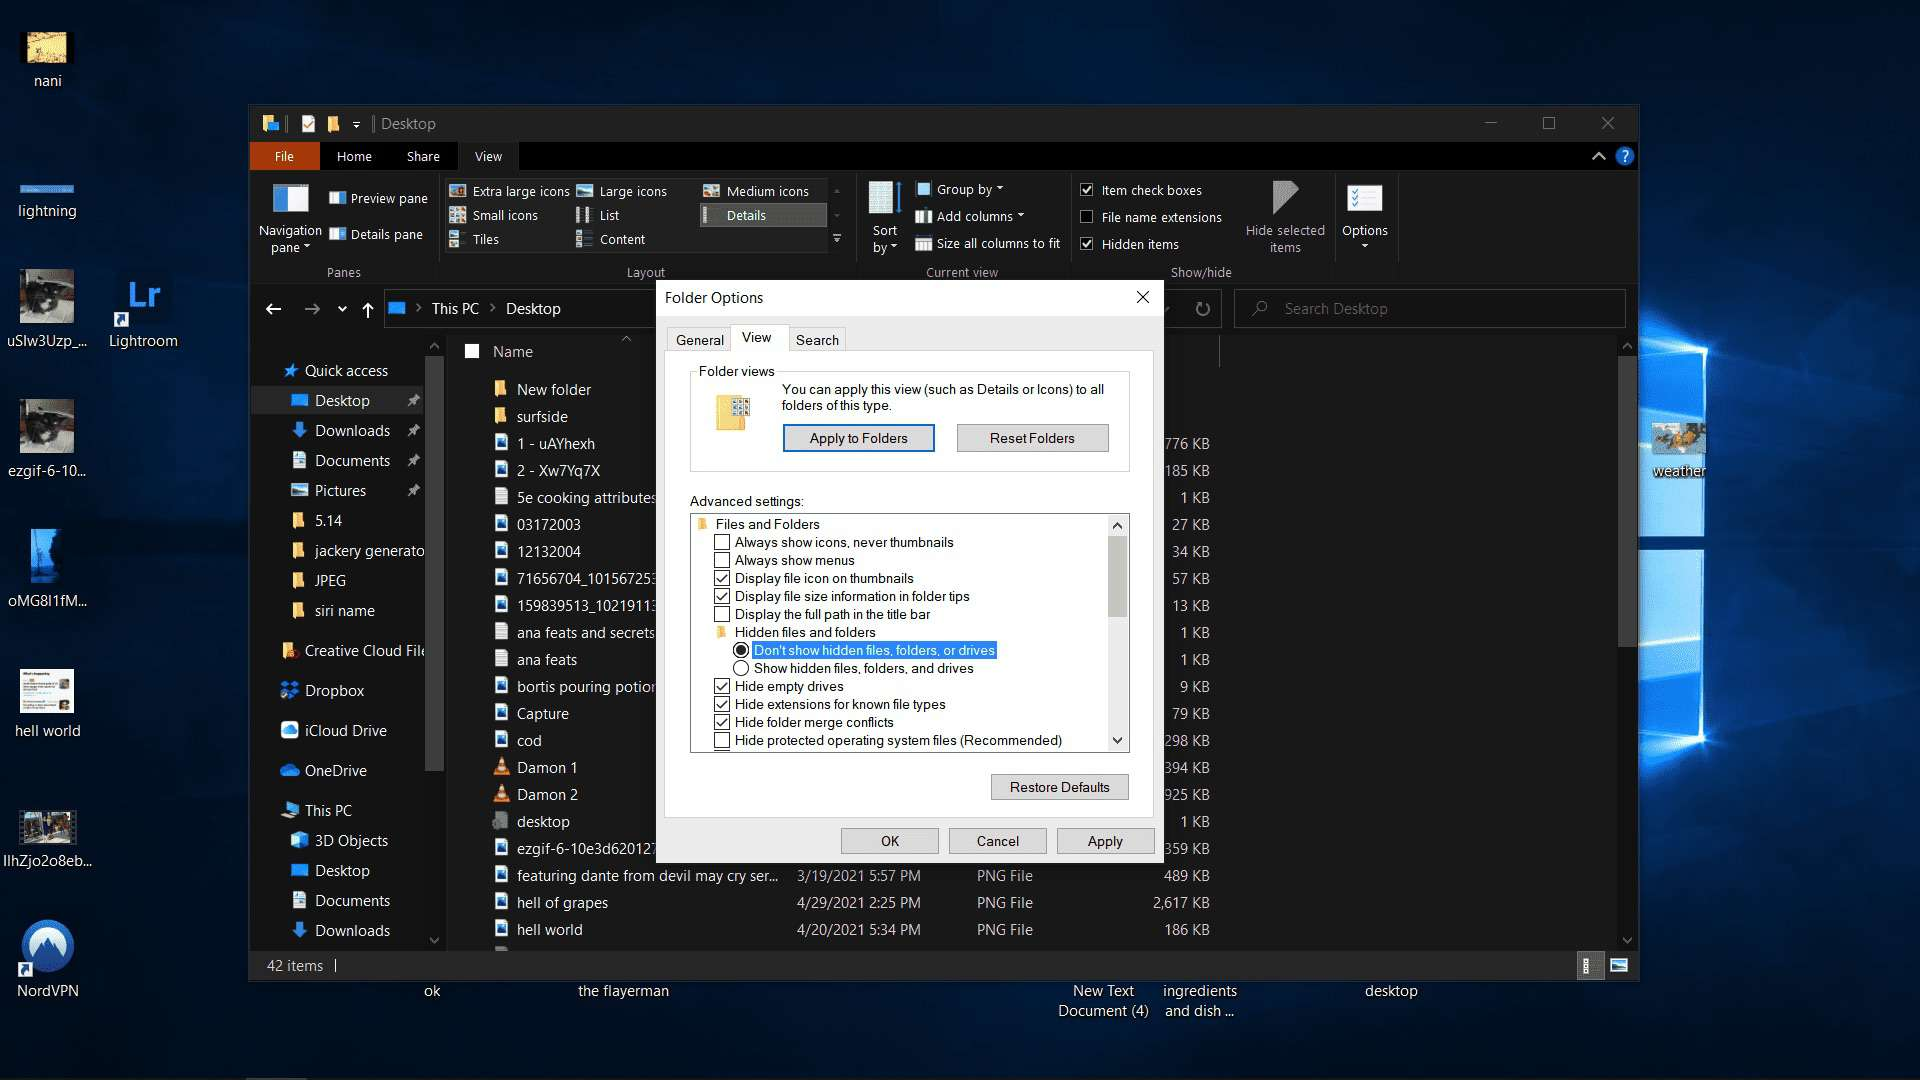 Don't show hidden files, folders, or drives highlighted.